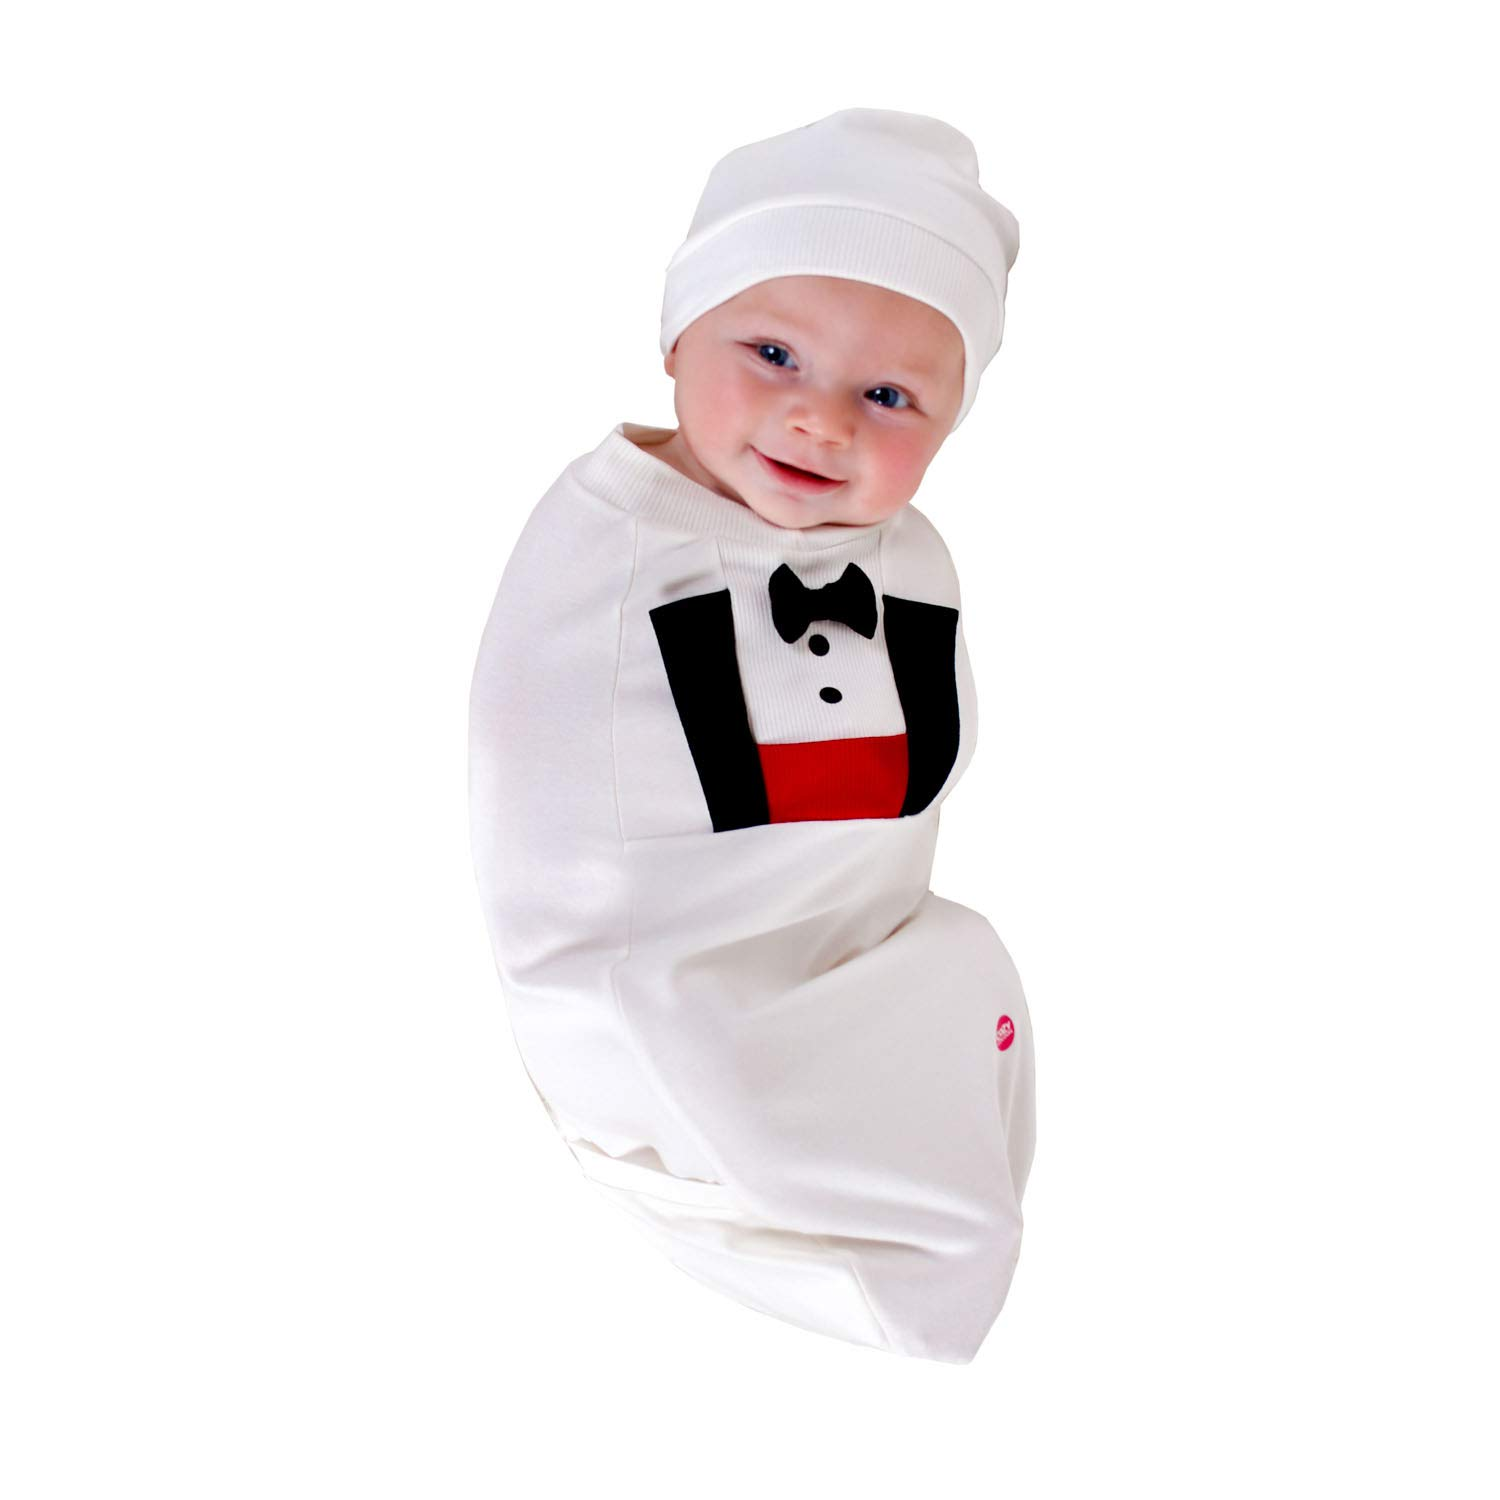 Cozy Cocoon Baby Cocoon Swaddle and Matching Hat, Tuxedo, 0-3 Months - Made in USA